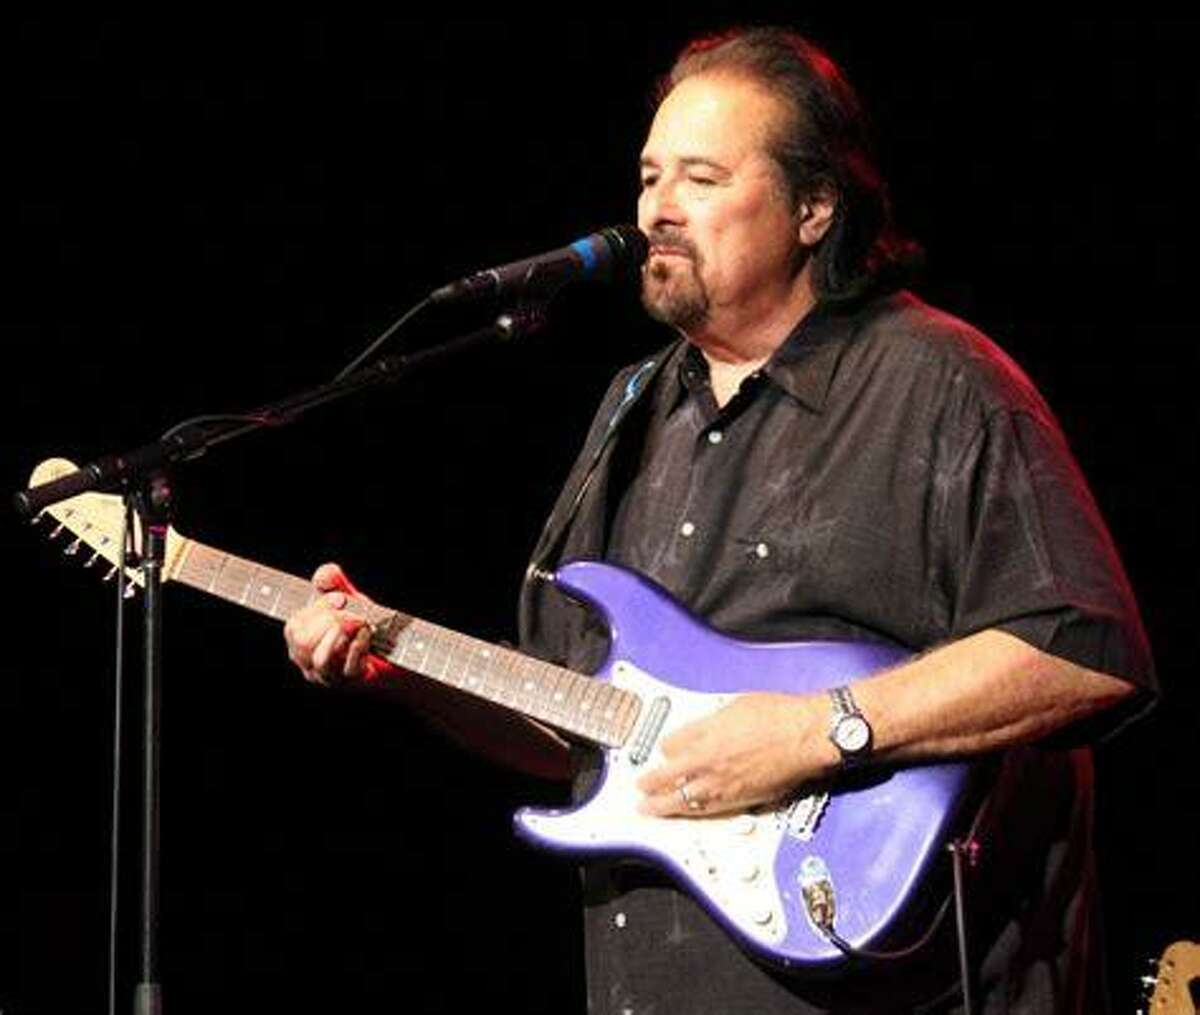 Coco Montoya is performing at Bridge Street Live in Collinsville in September.